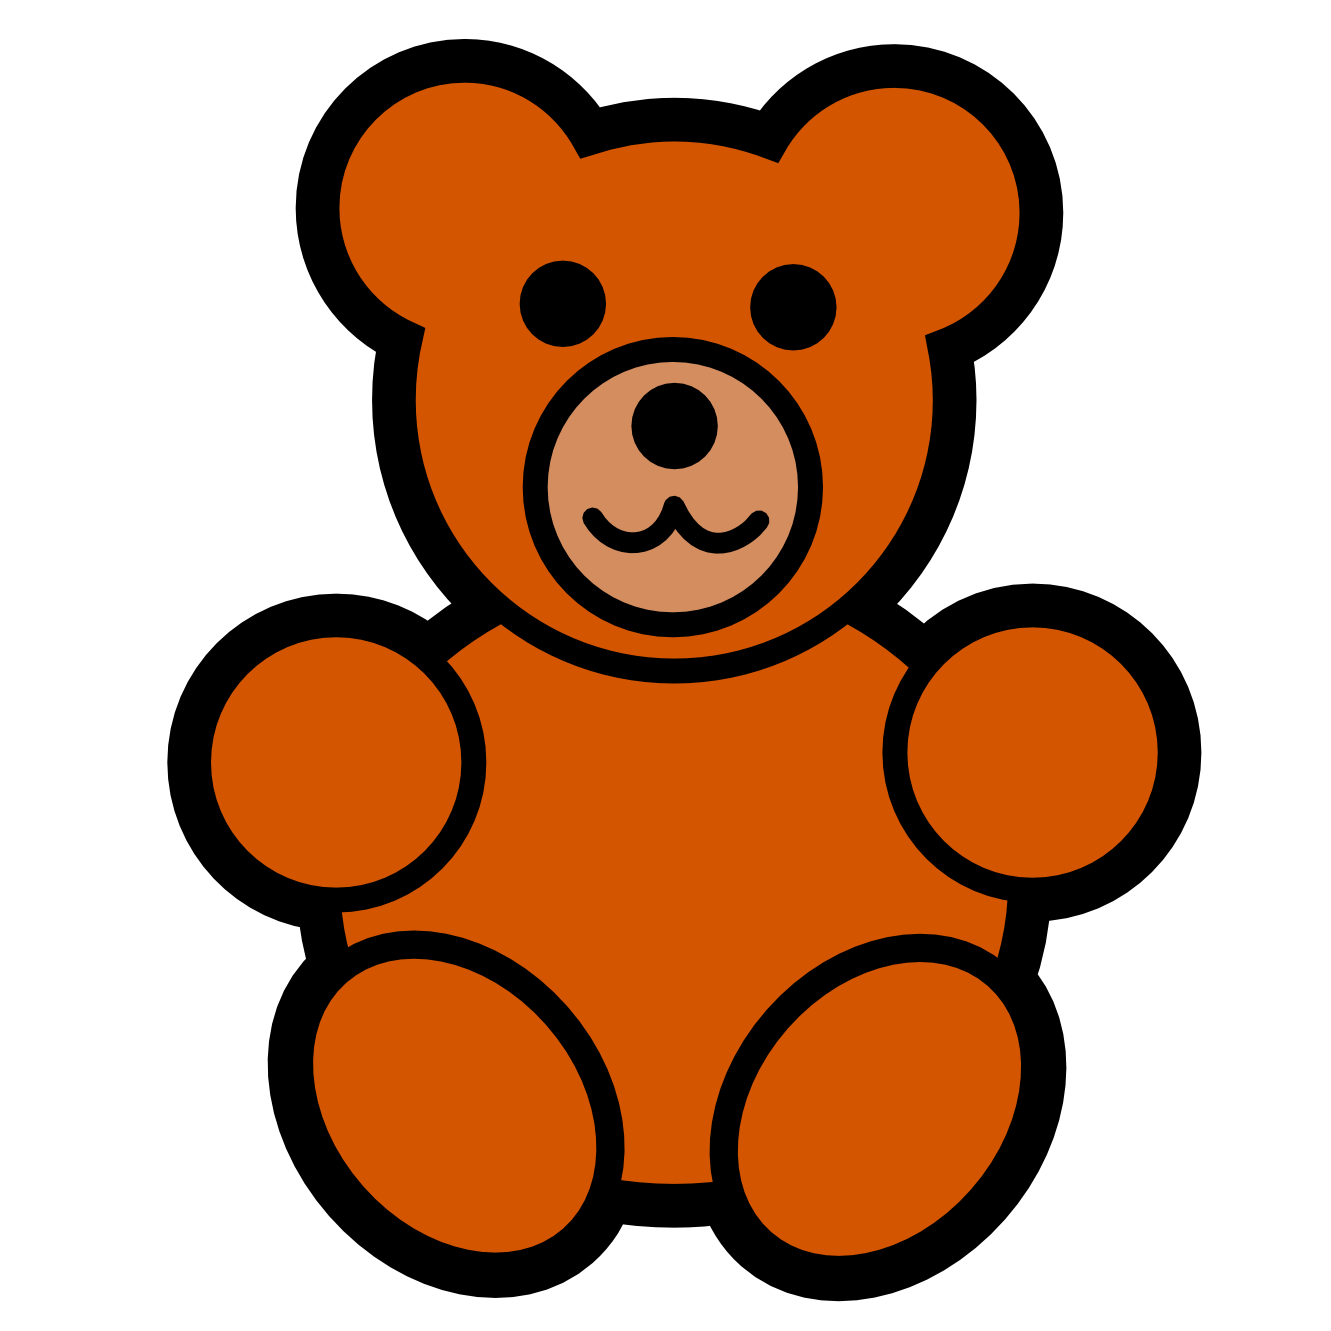 teddy bears clip art free download - photo #22